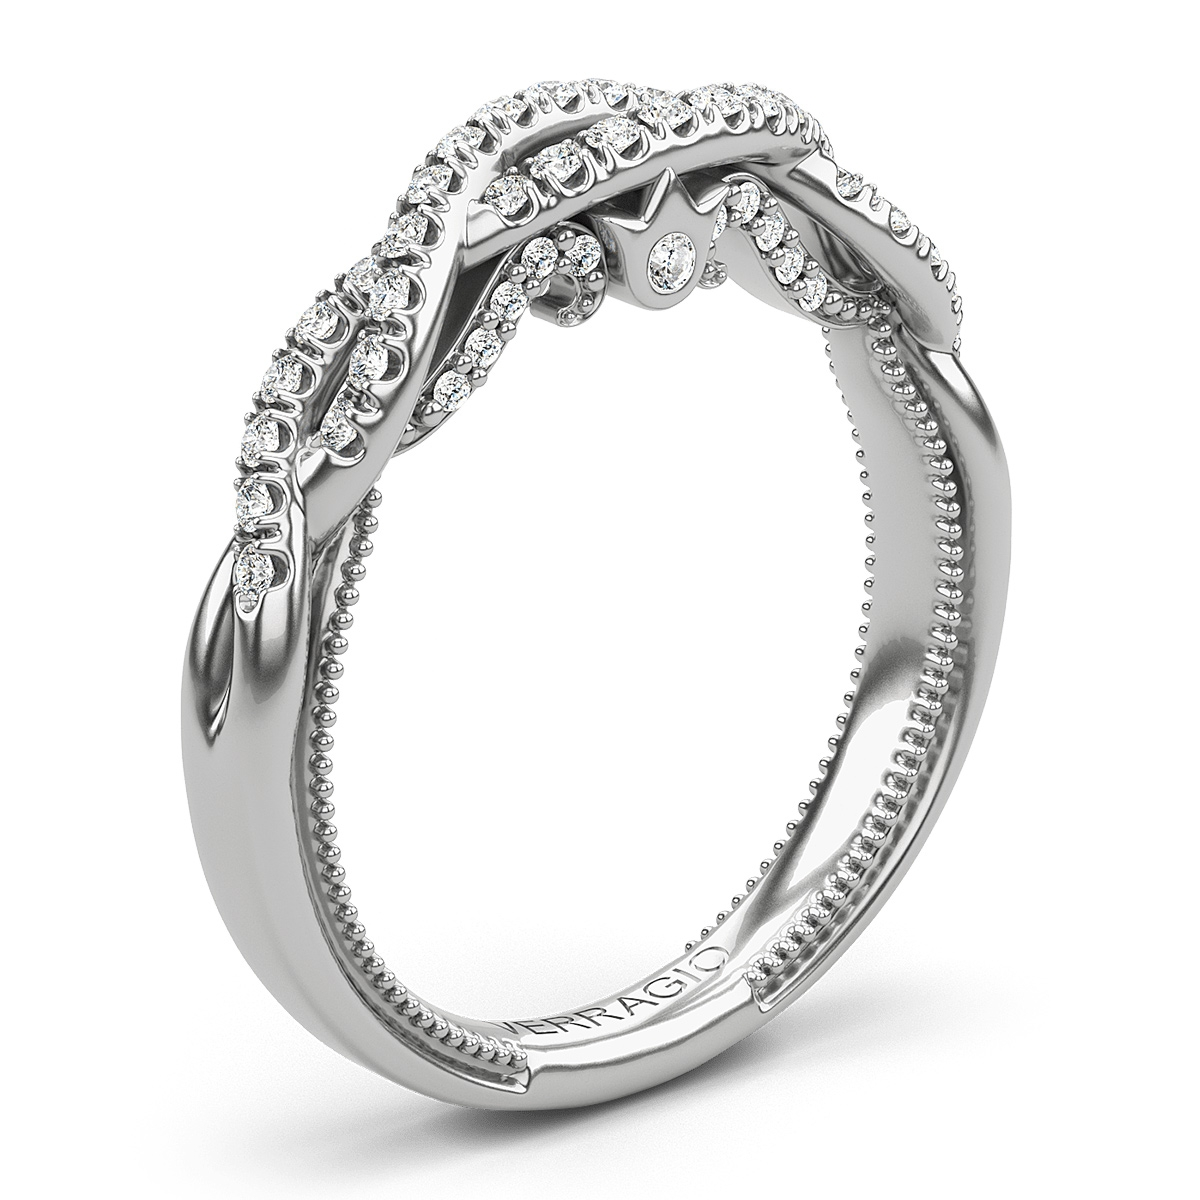 Verragio Insignia-7099W 14 Karat Wedding Ring / Band Alternative View 1